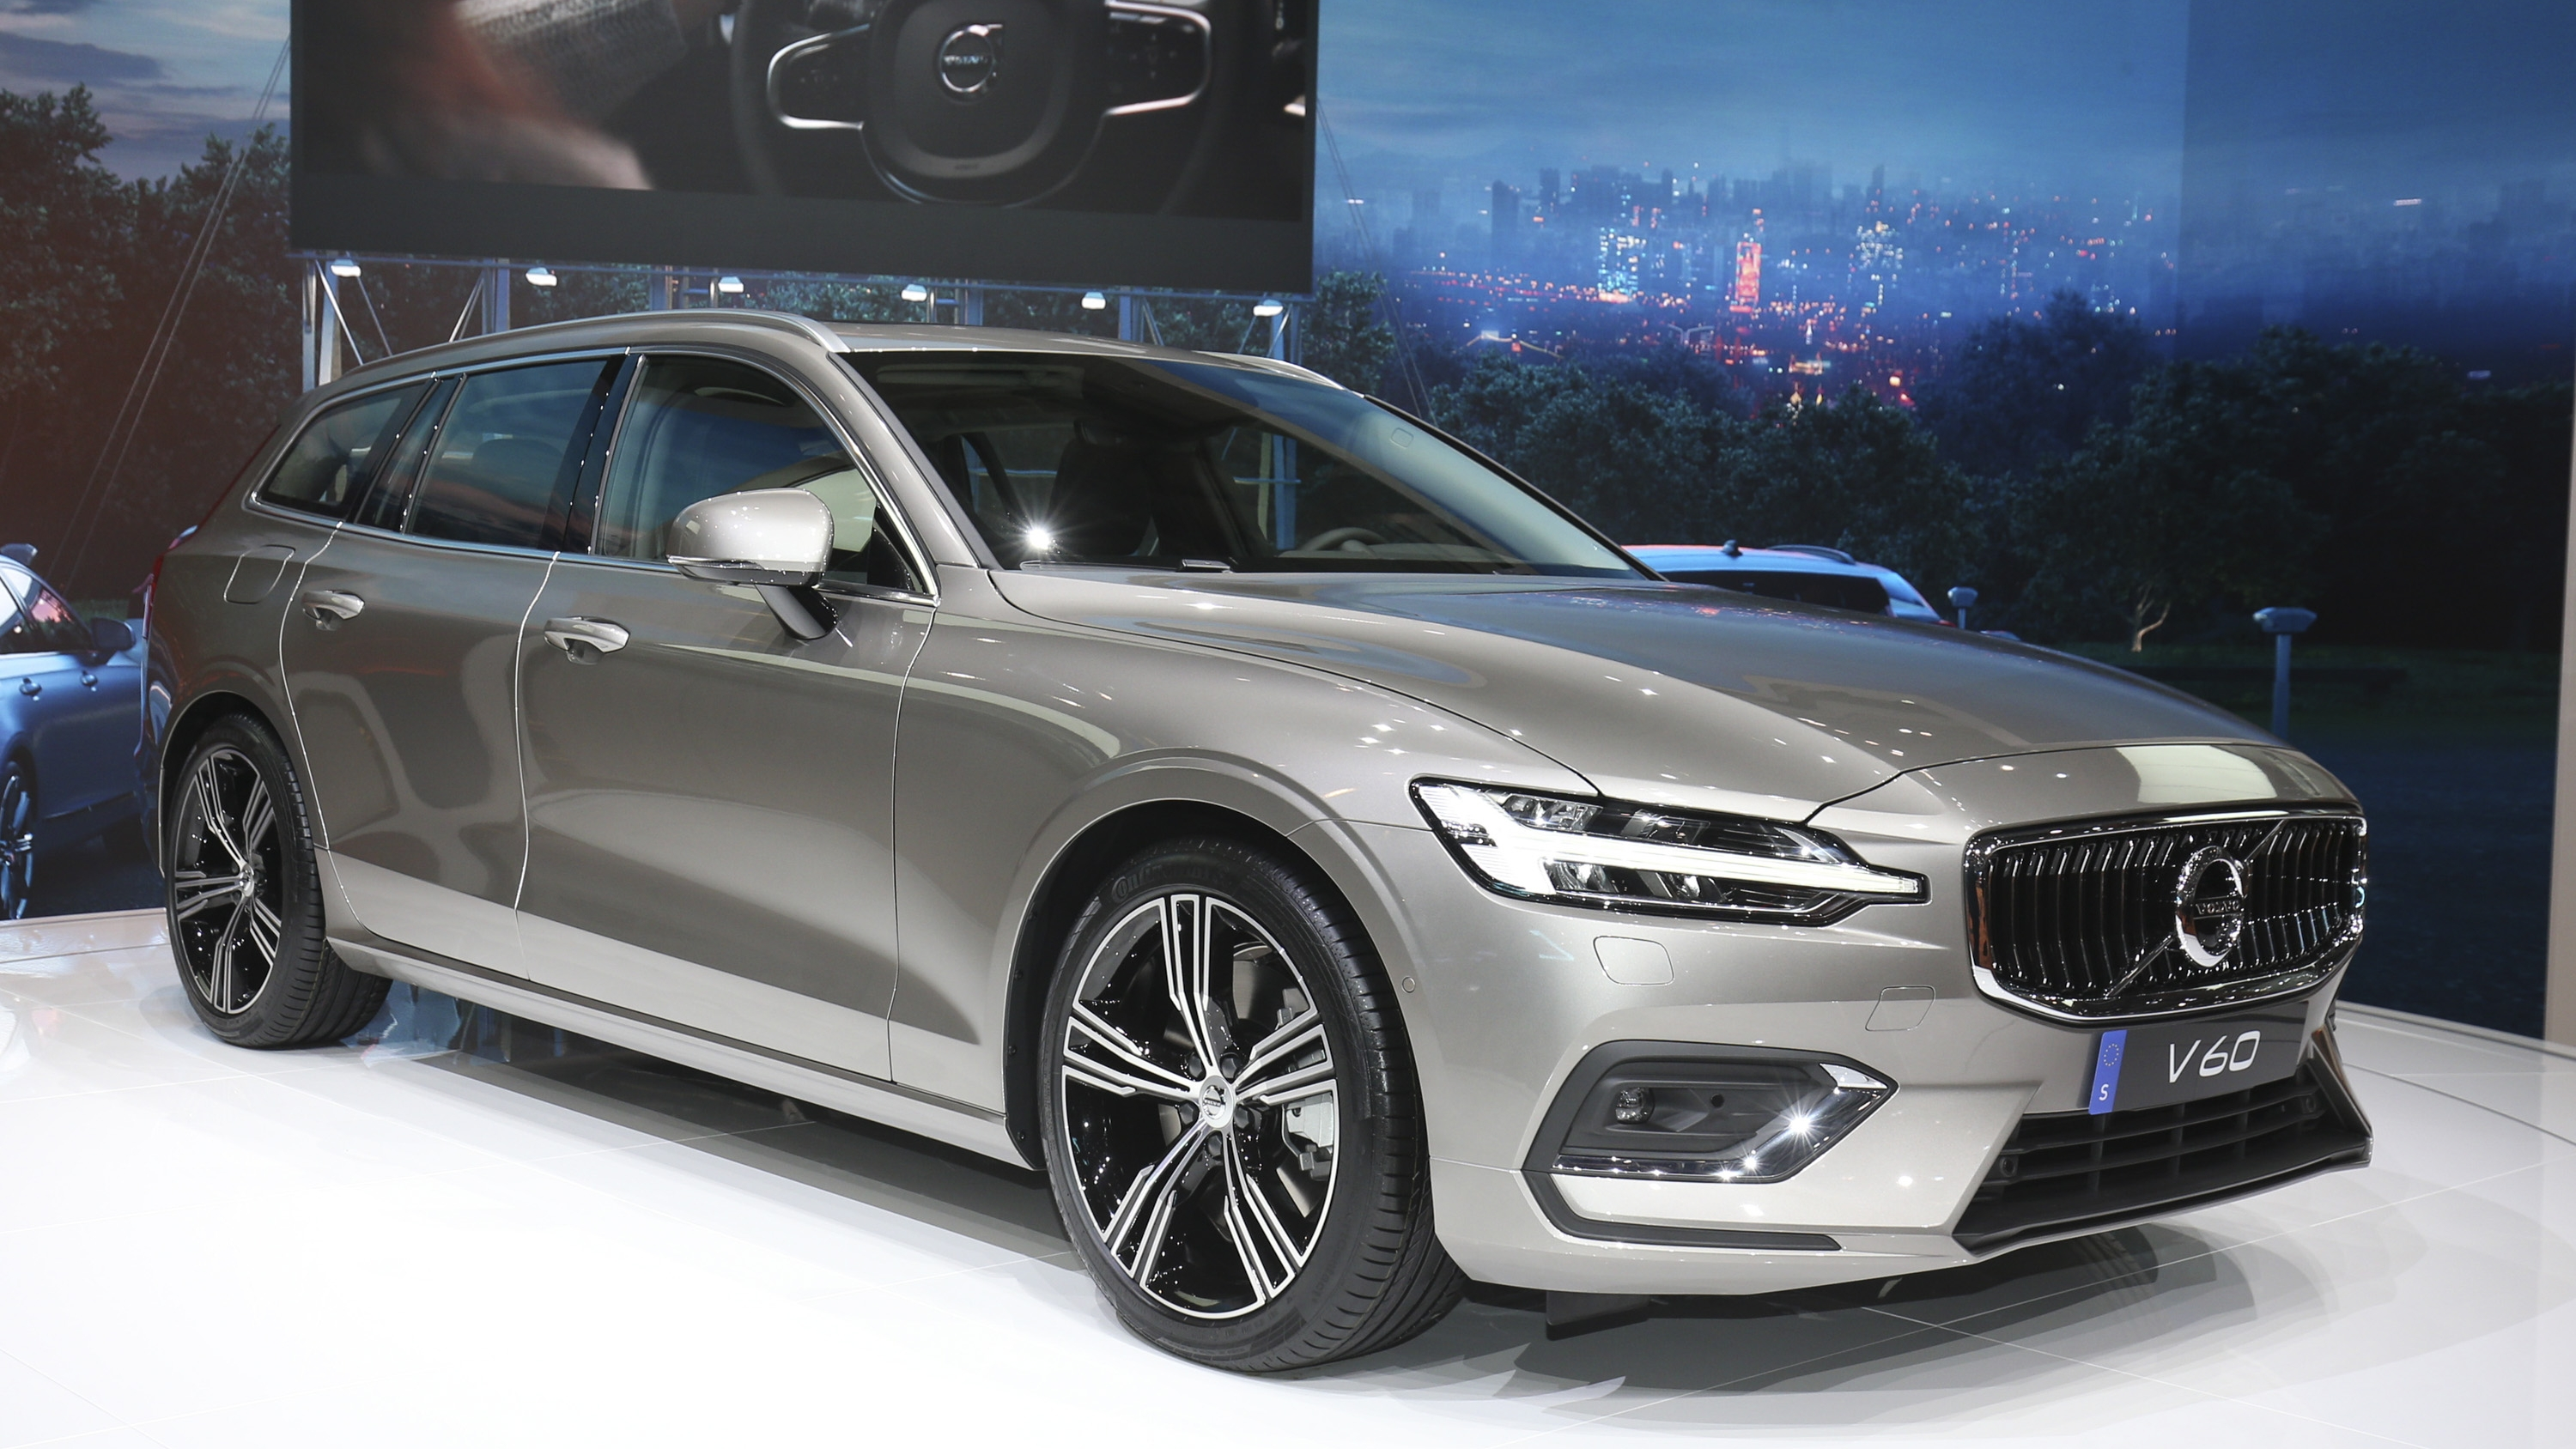 Volvo Unveiled The V60 As The BMW 3-Series Touring, Mercedes C-Class Wagon, And Audi A4 Avant ...